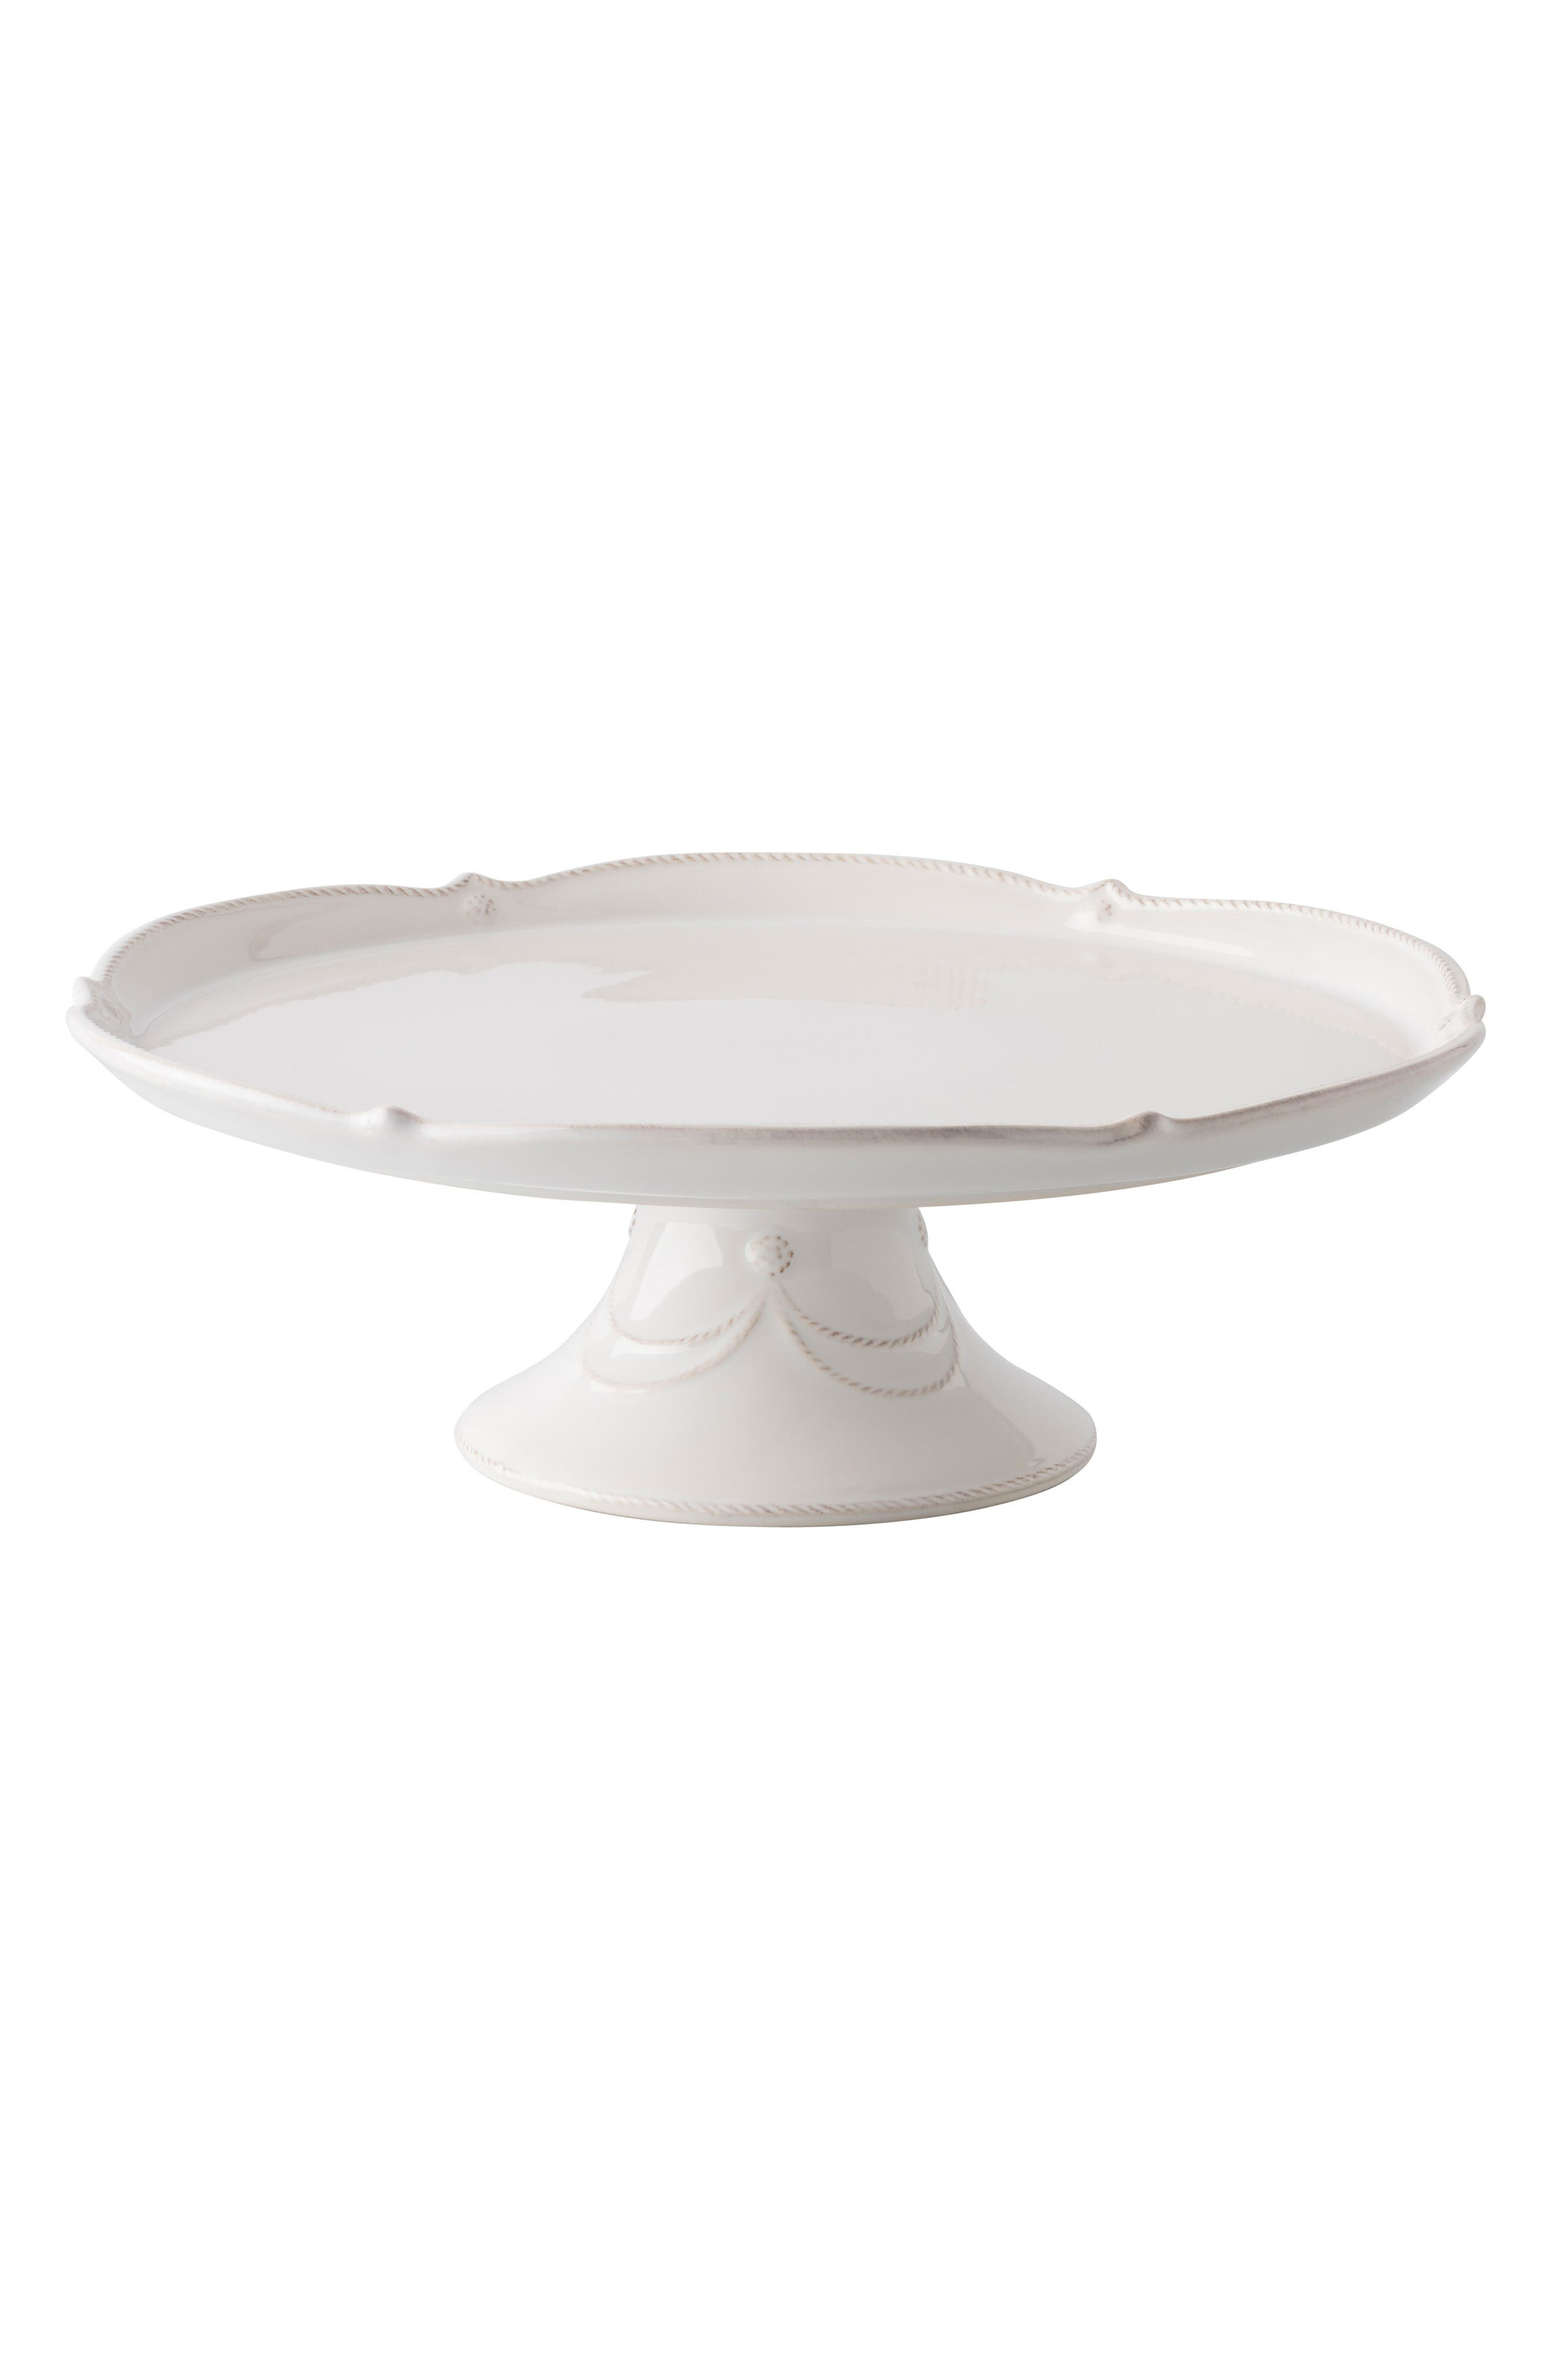 Juliska Berry & Thread Ceramic Cake Stand